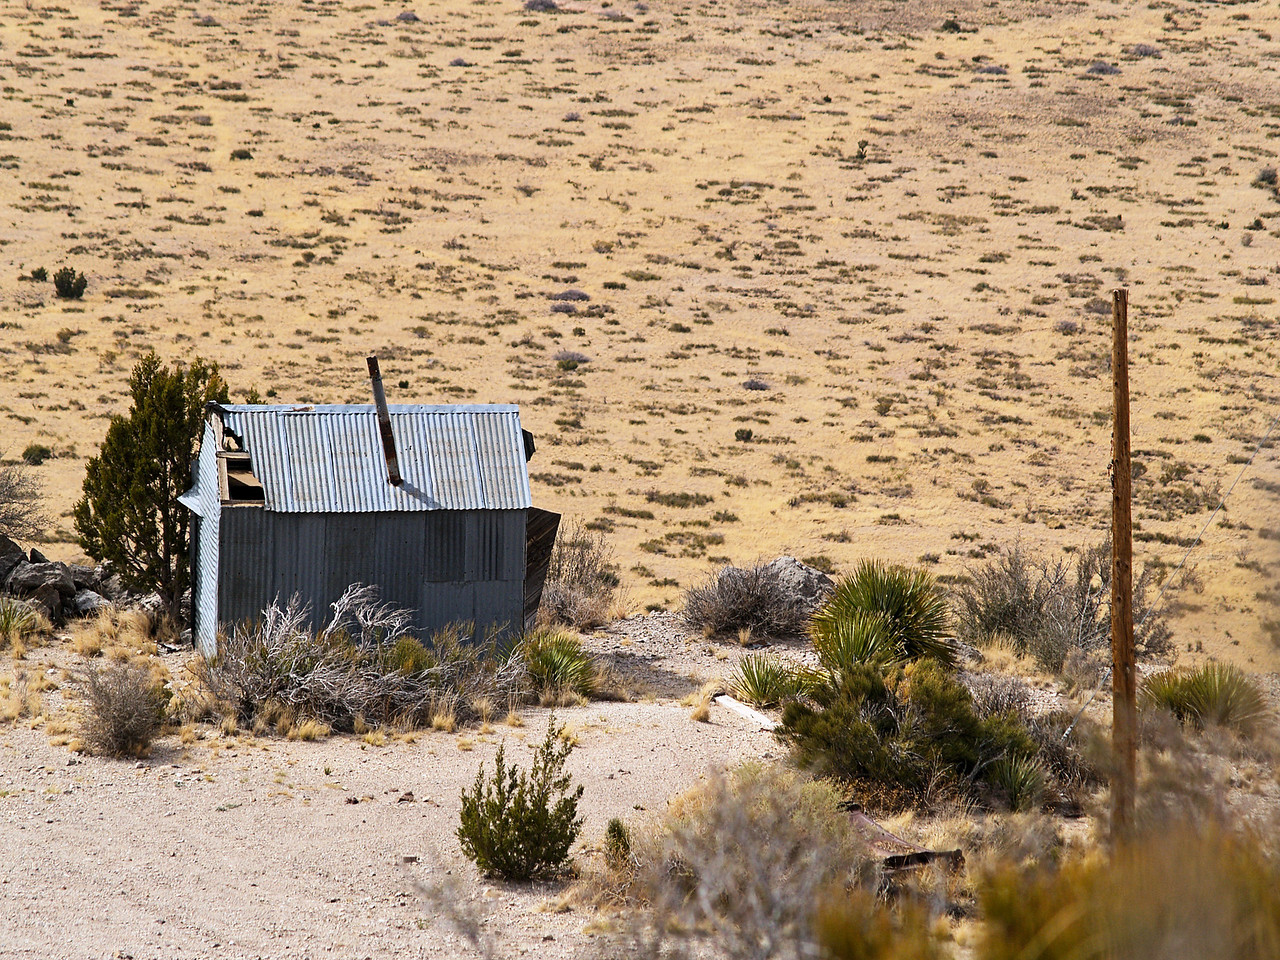 OLYMPUS DIGITAL CAMERA--Old mining shack, overlooking the desert floor, located high up on the mountain.